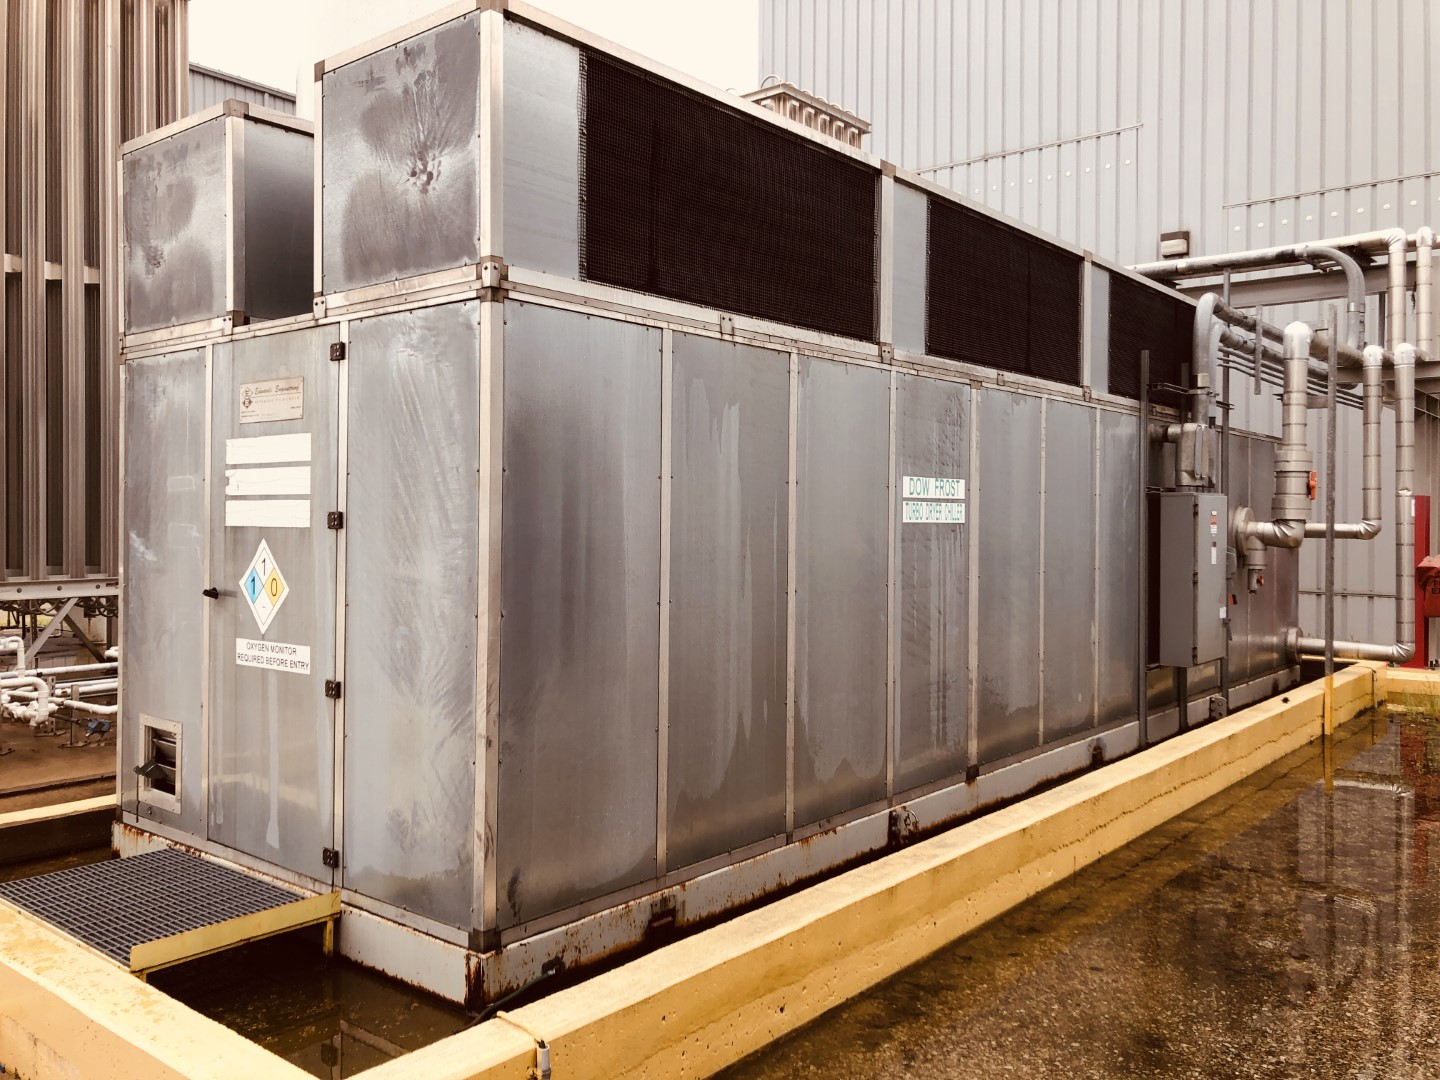 195 Ton Edwards Chiller, Model CE-210-A- 14ZB3, Air Cooled